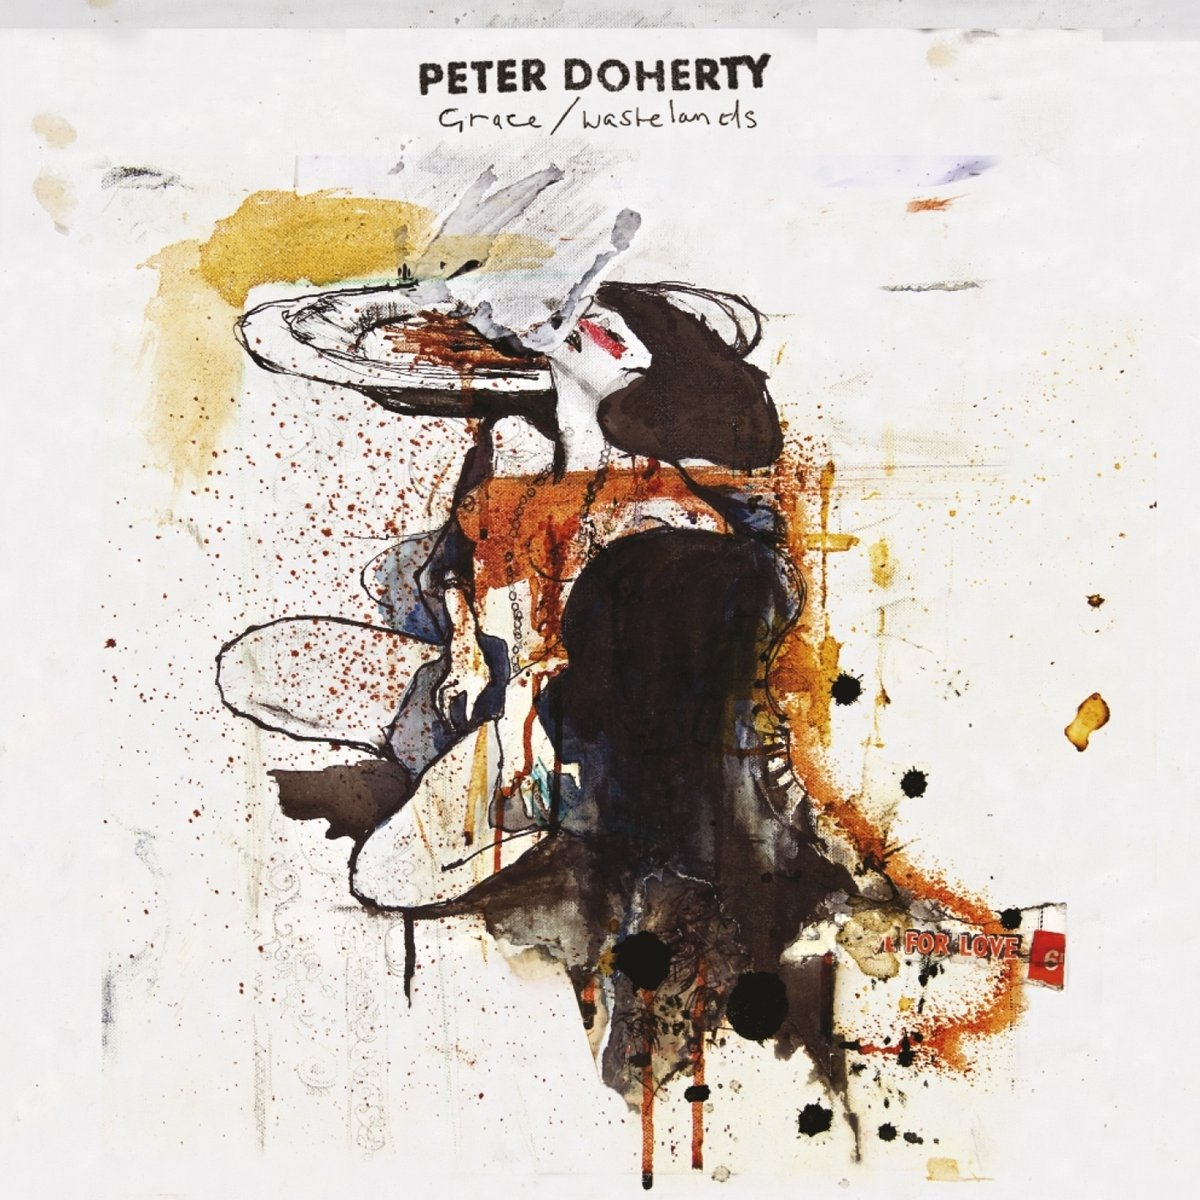 Peter Doherty, Grace/Wastelands